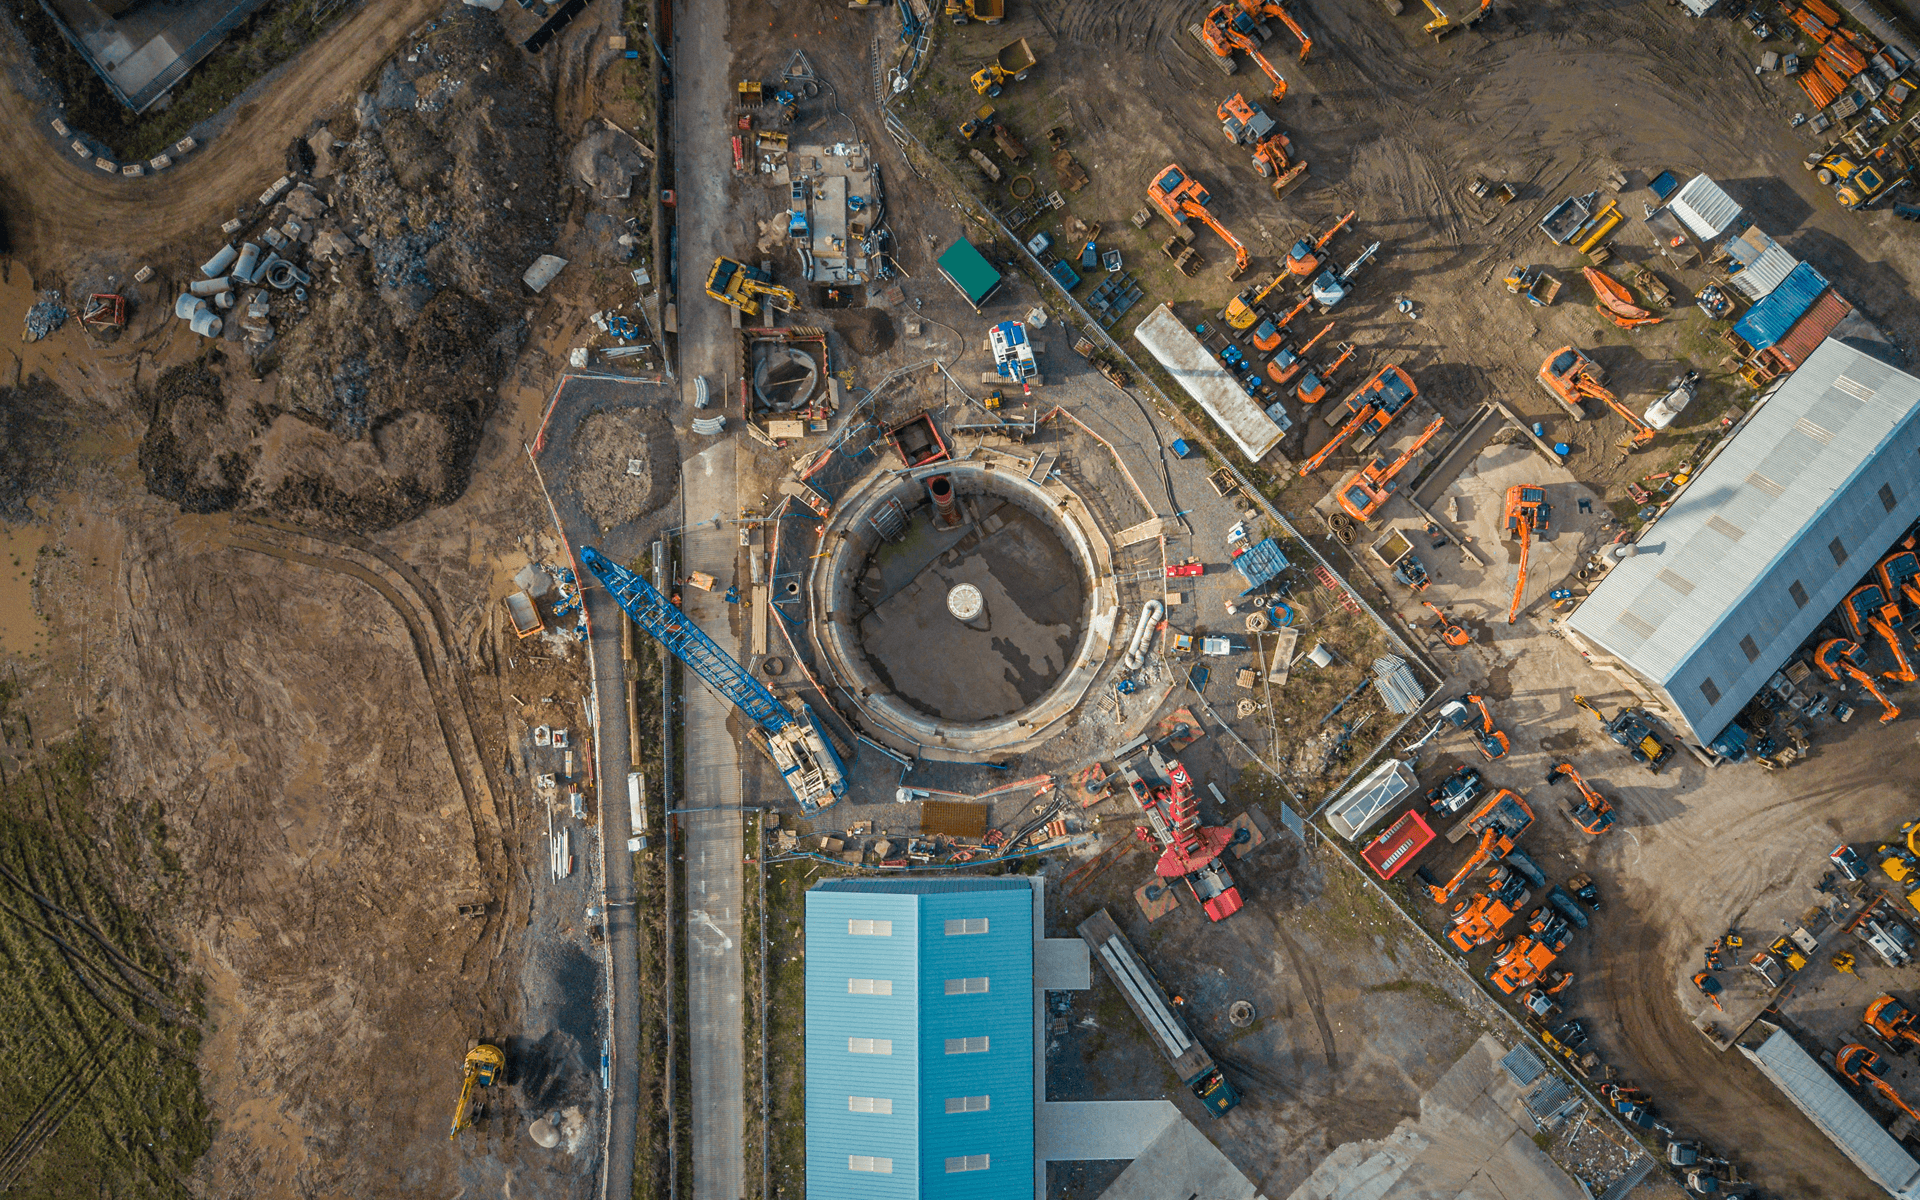 """Mavic Pro"" aerial drone photo of a ""LEWIS Civil Engineering"" flood overflow sewage tank in Bridgwater"